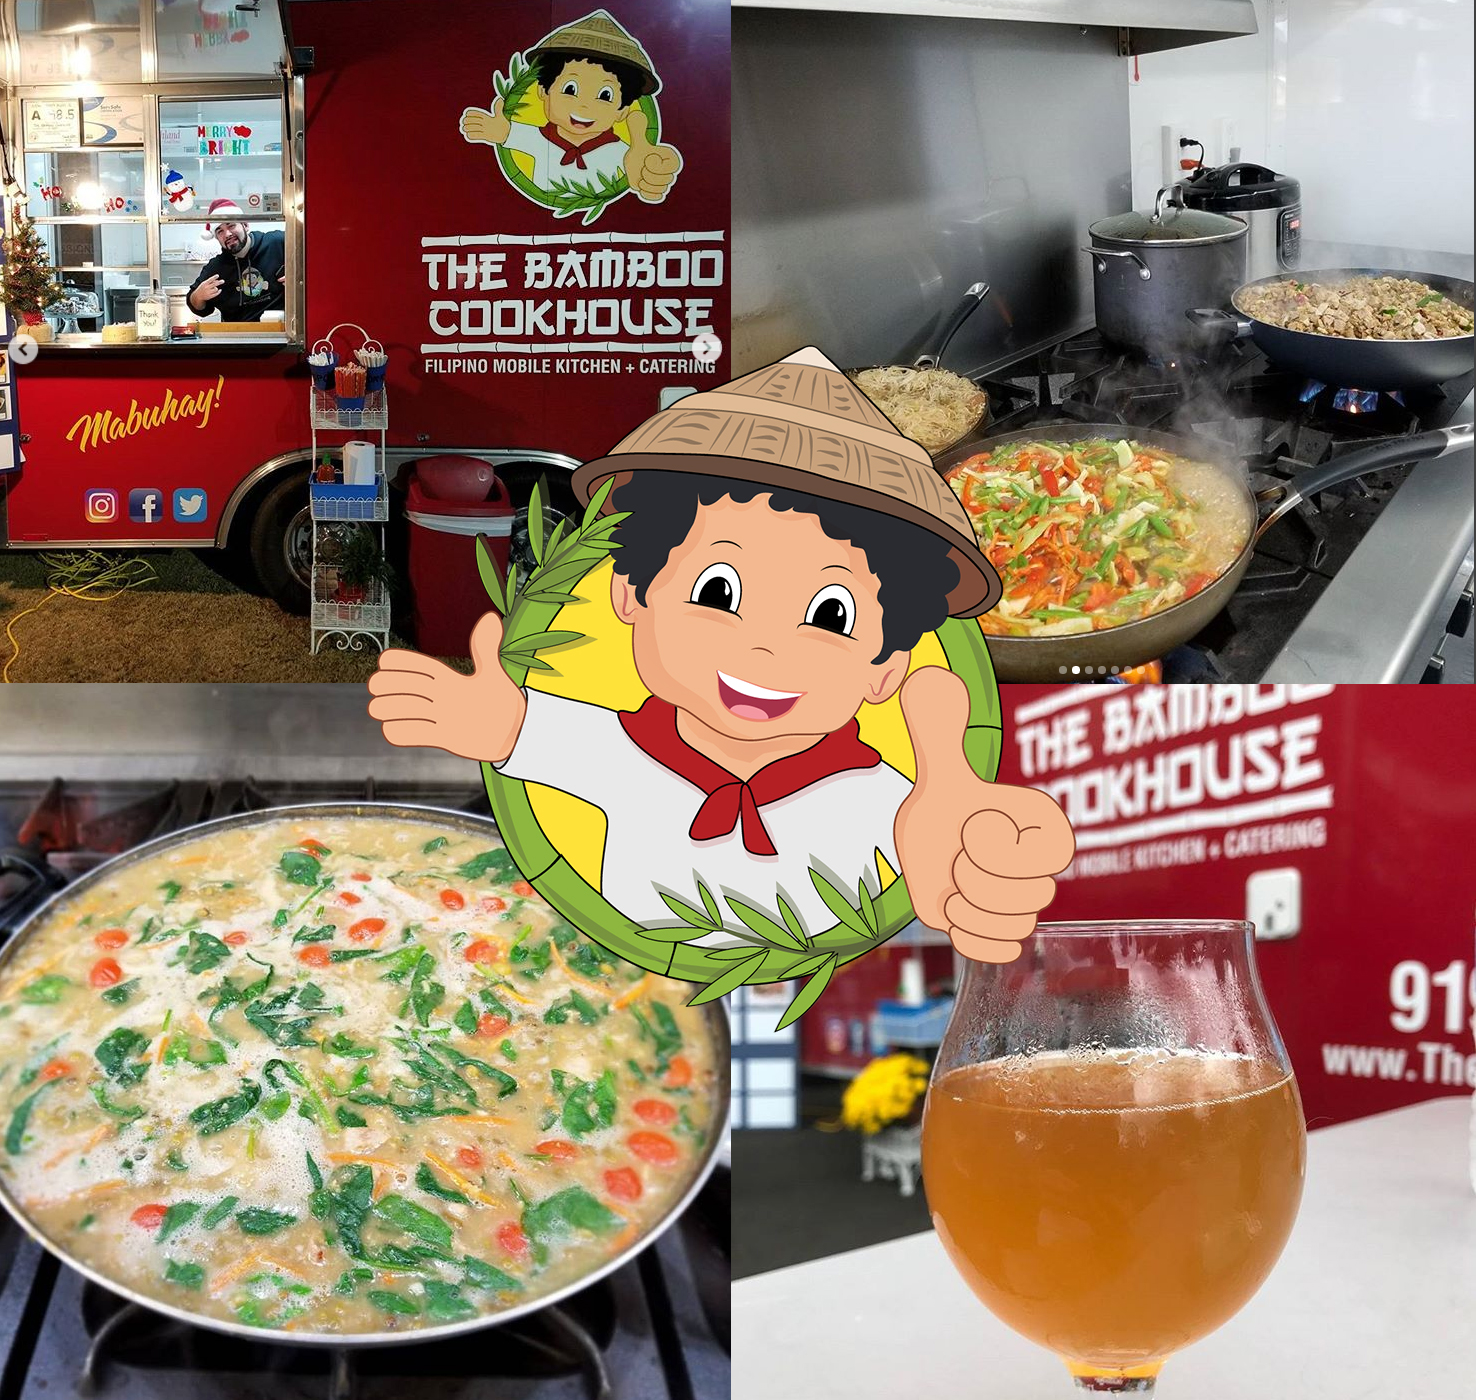 The Bambook Cookhoue North Carolina Filipino Food Truck Branding